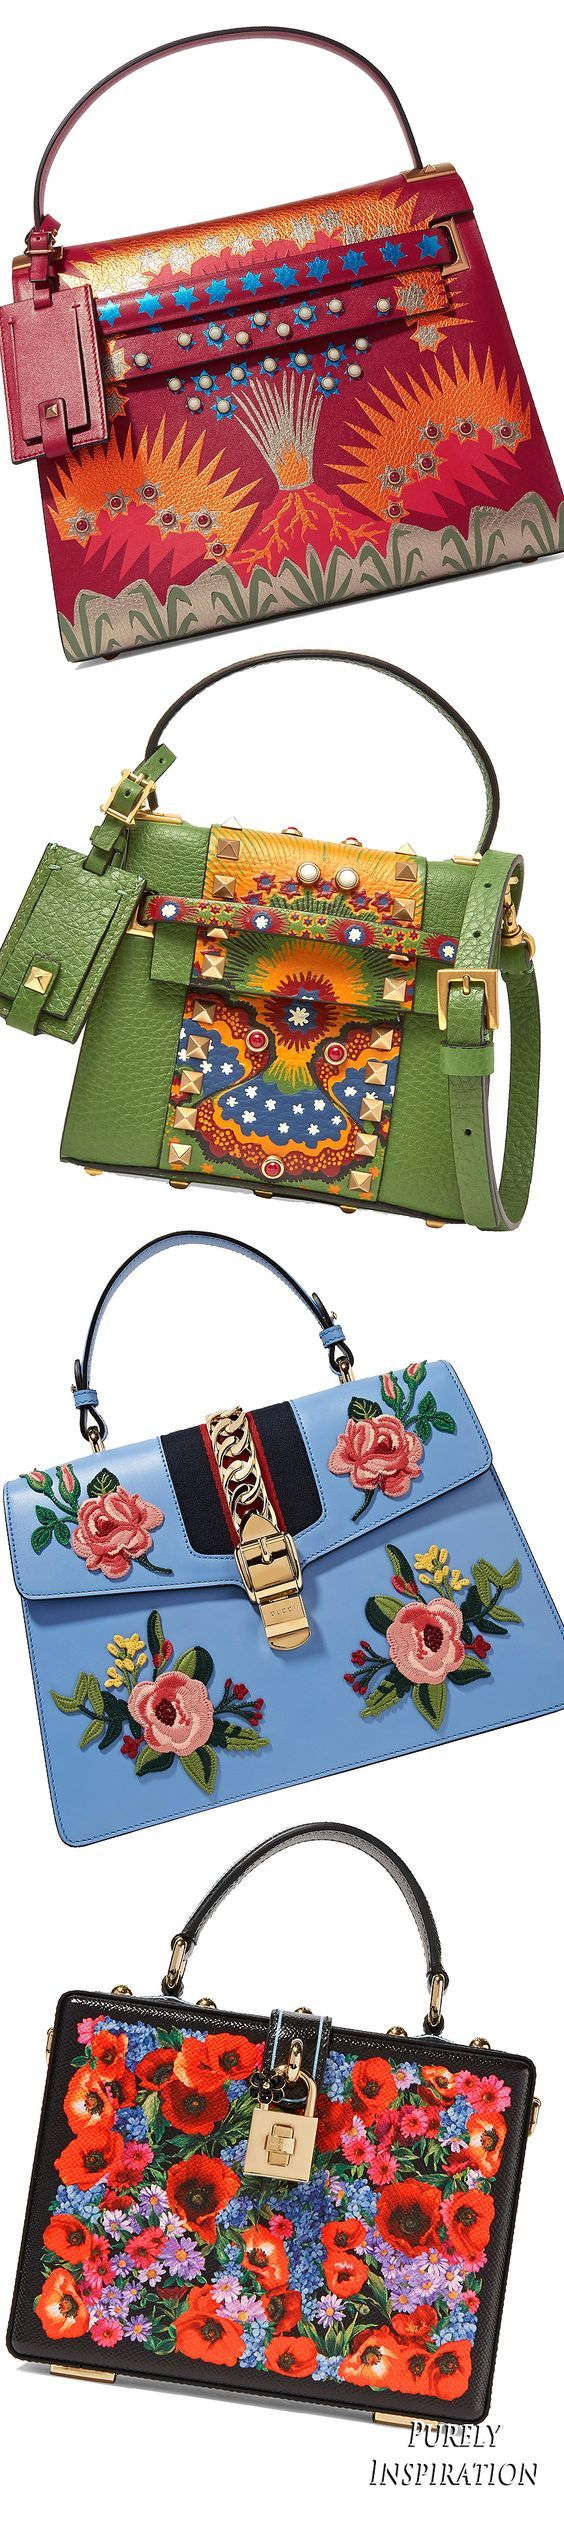 Luxury Bags Collection Valentino , Dolce & Gabbana , Gucci  & over 80 Lu...